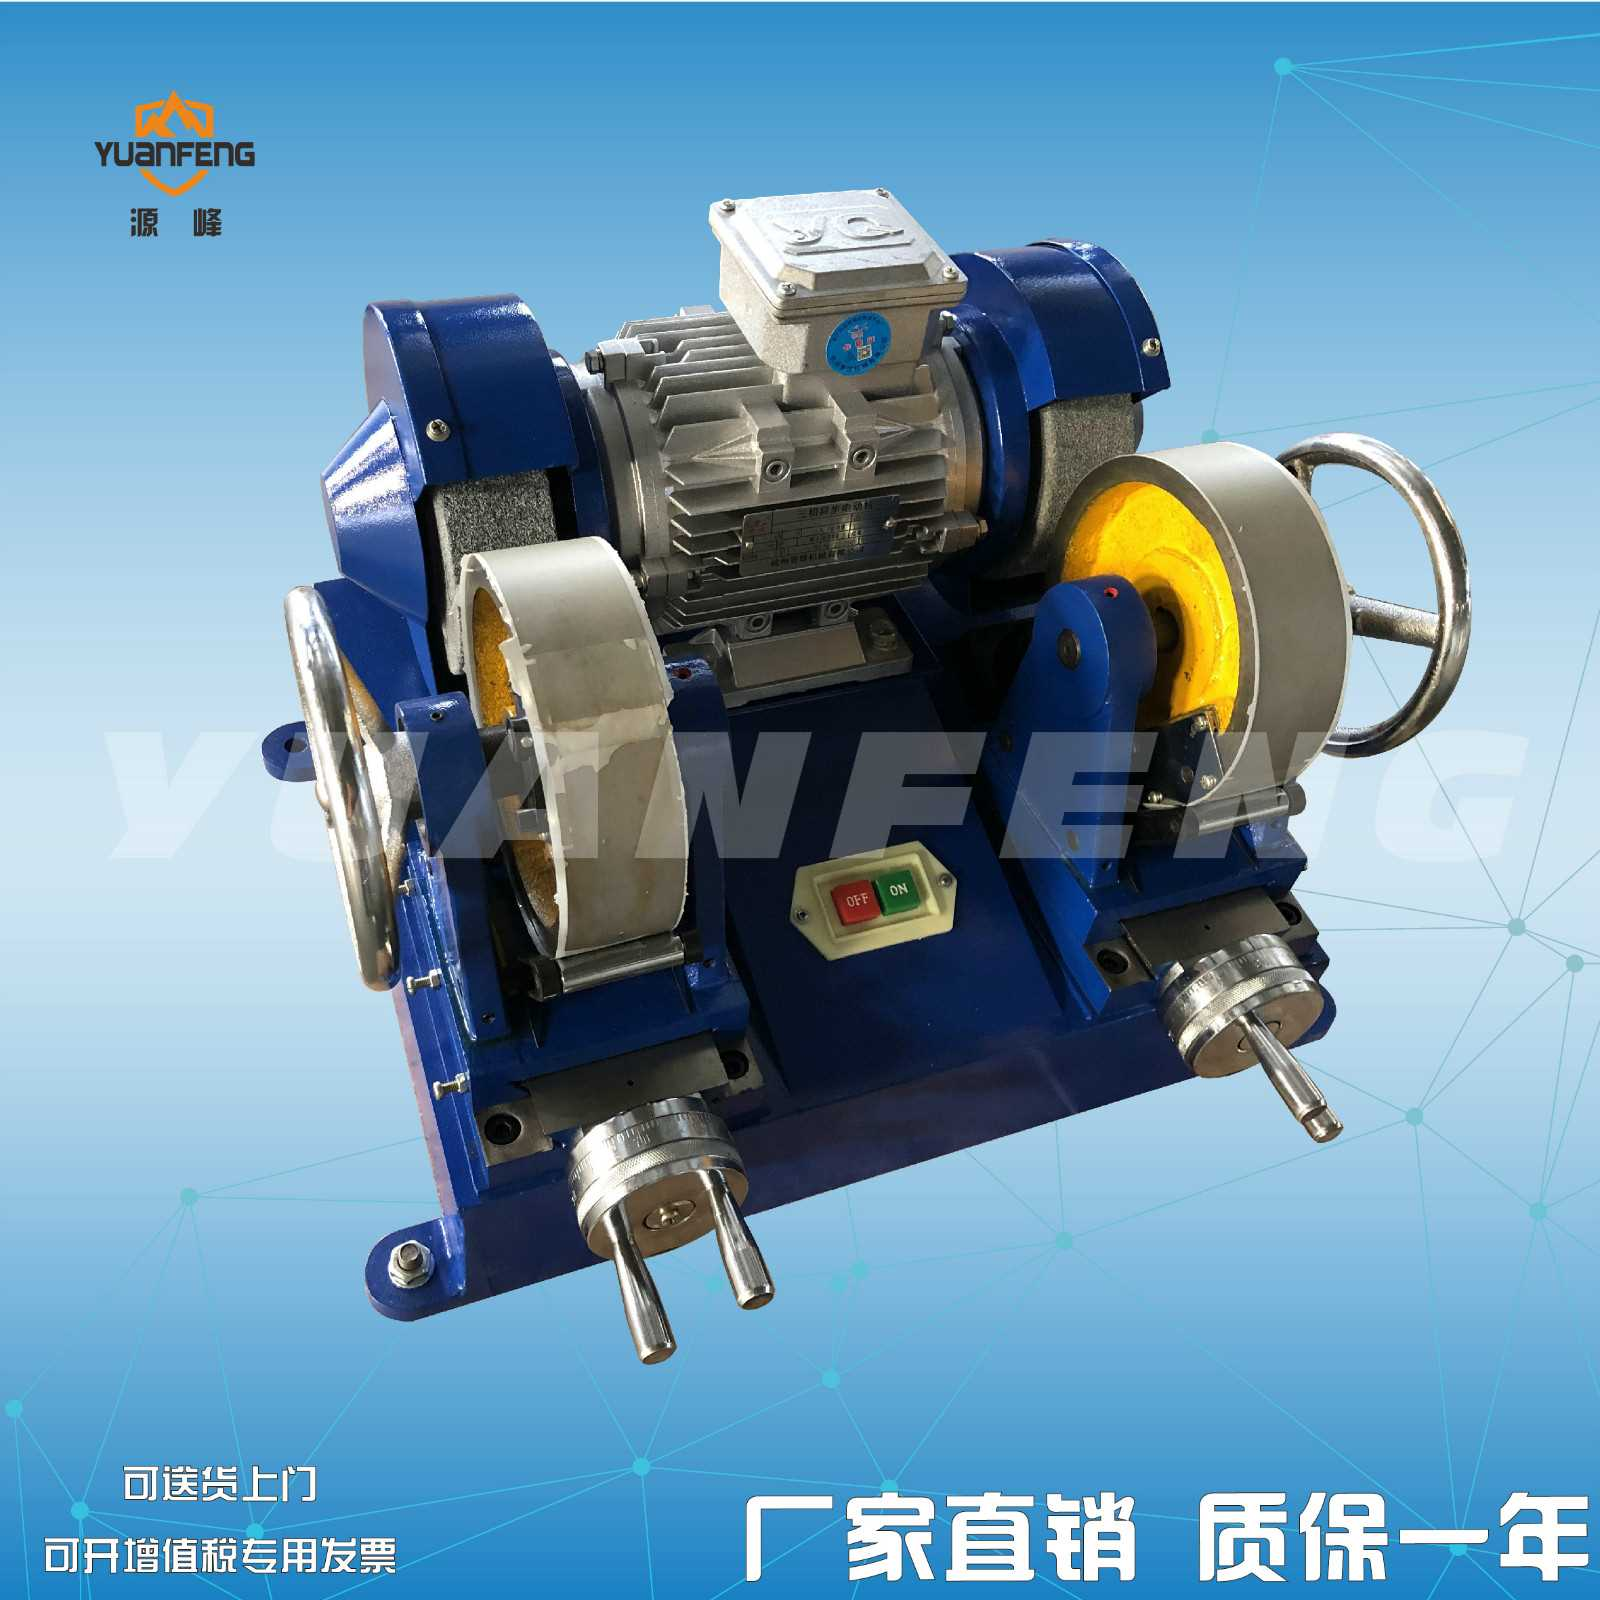 Double head grinder, factory direct, manufacturer, sample grinding machine